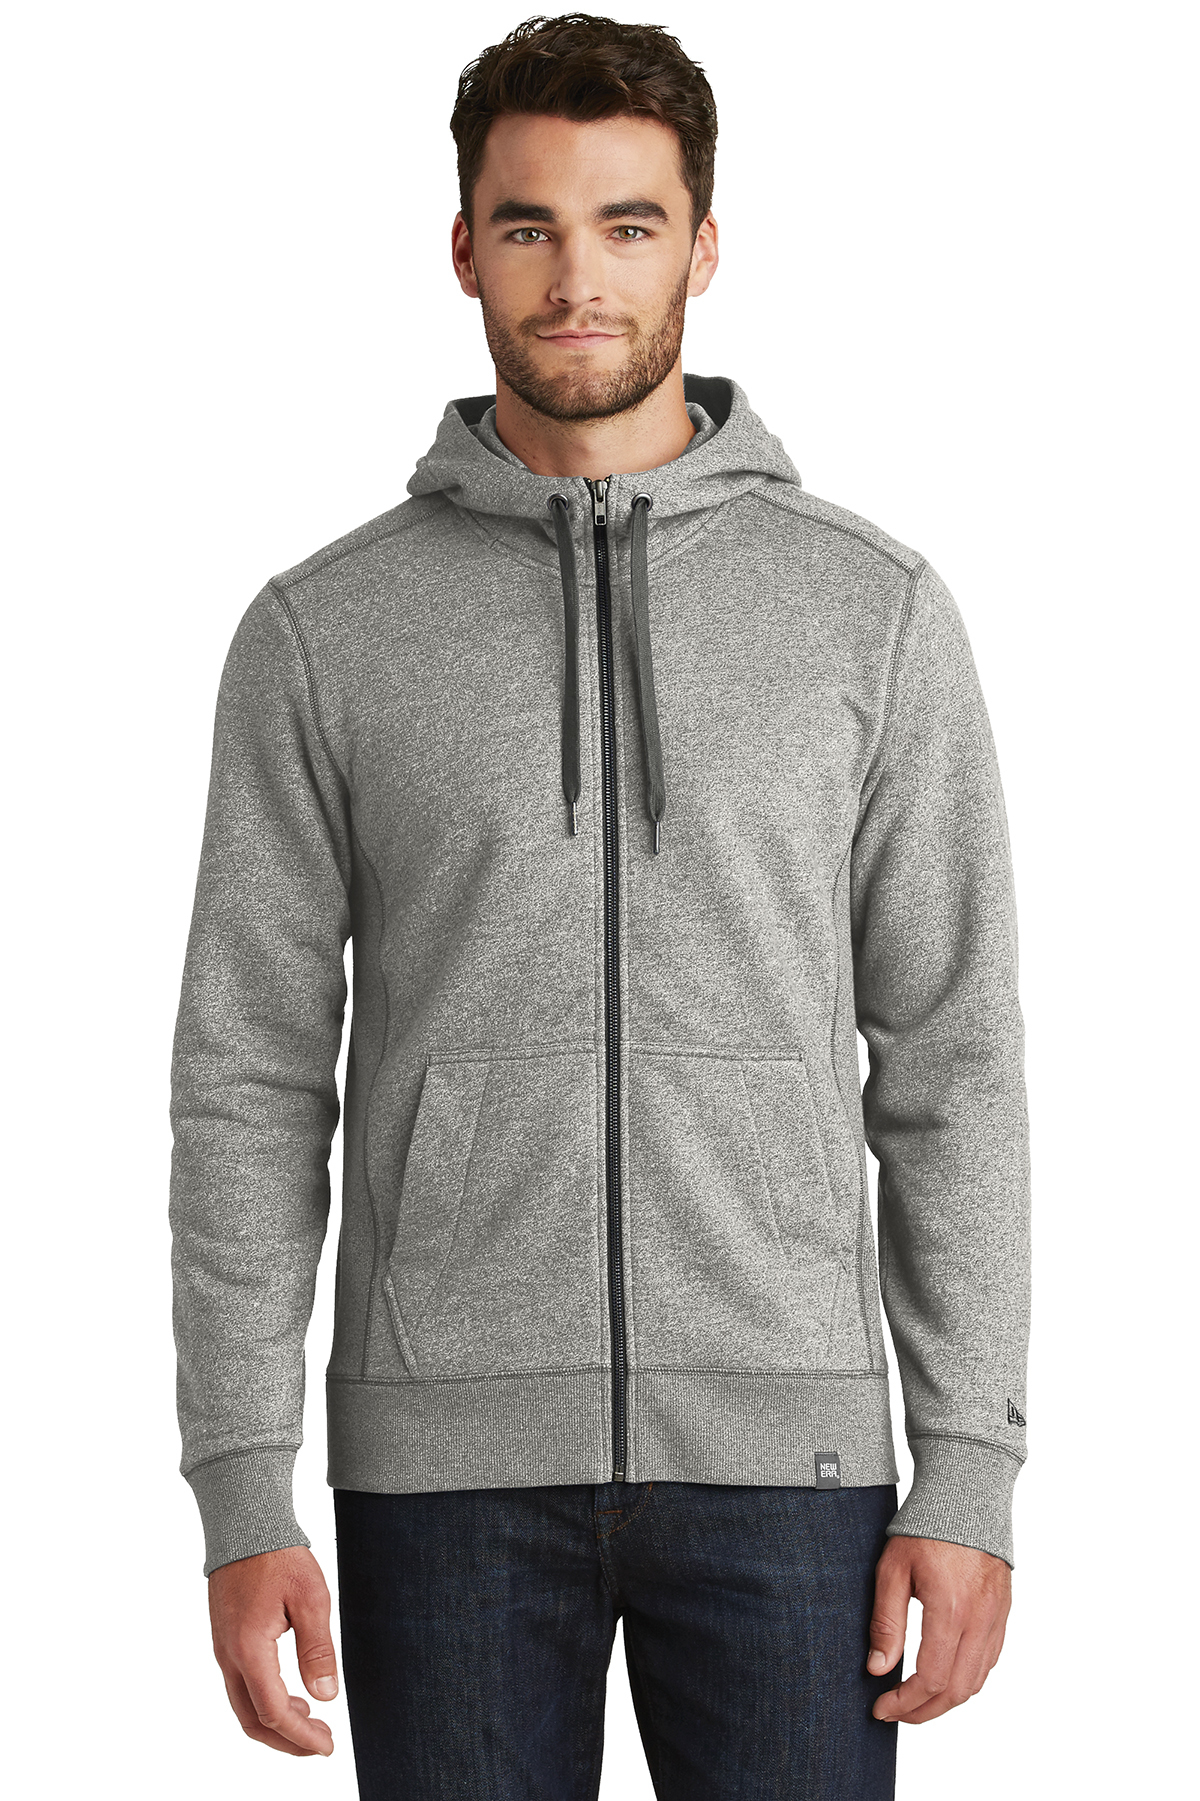 New Era NEA502 - Men's French Terry Full Zip Hoodie